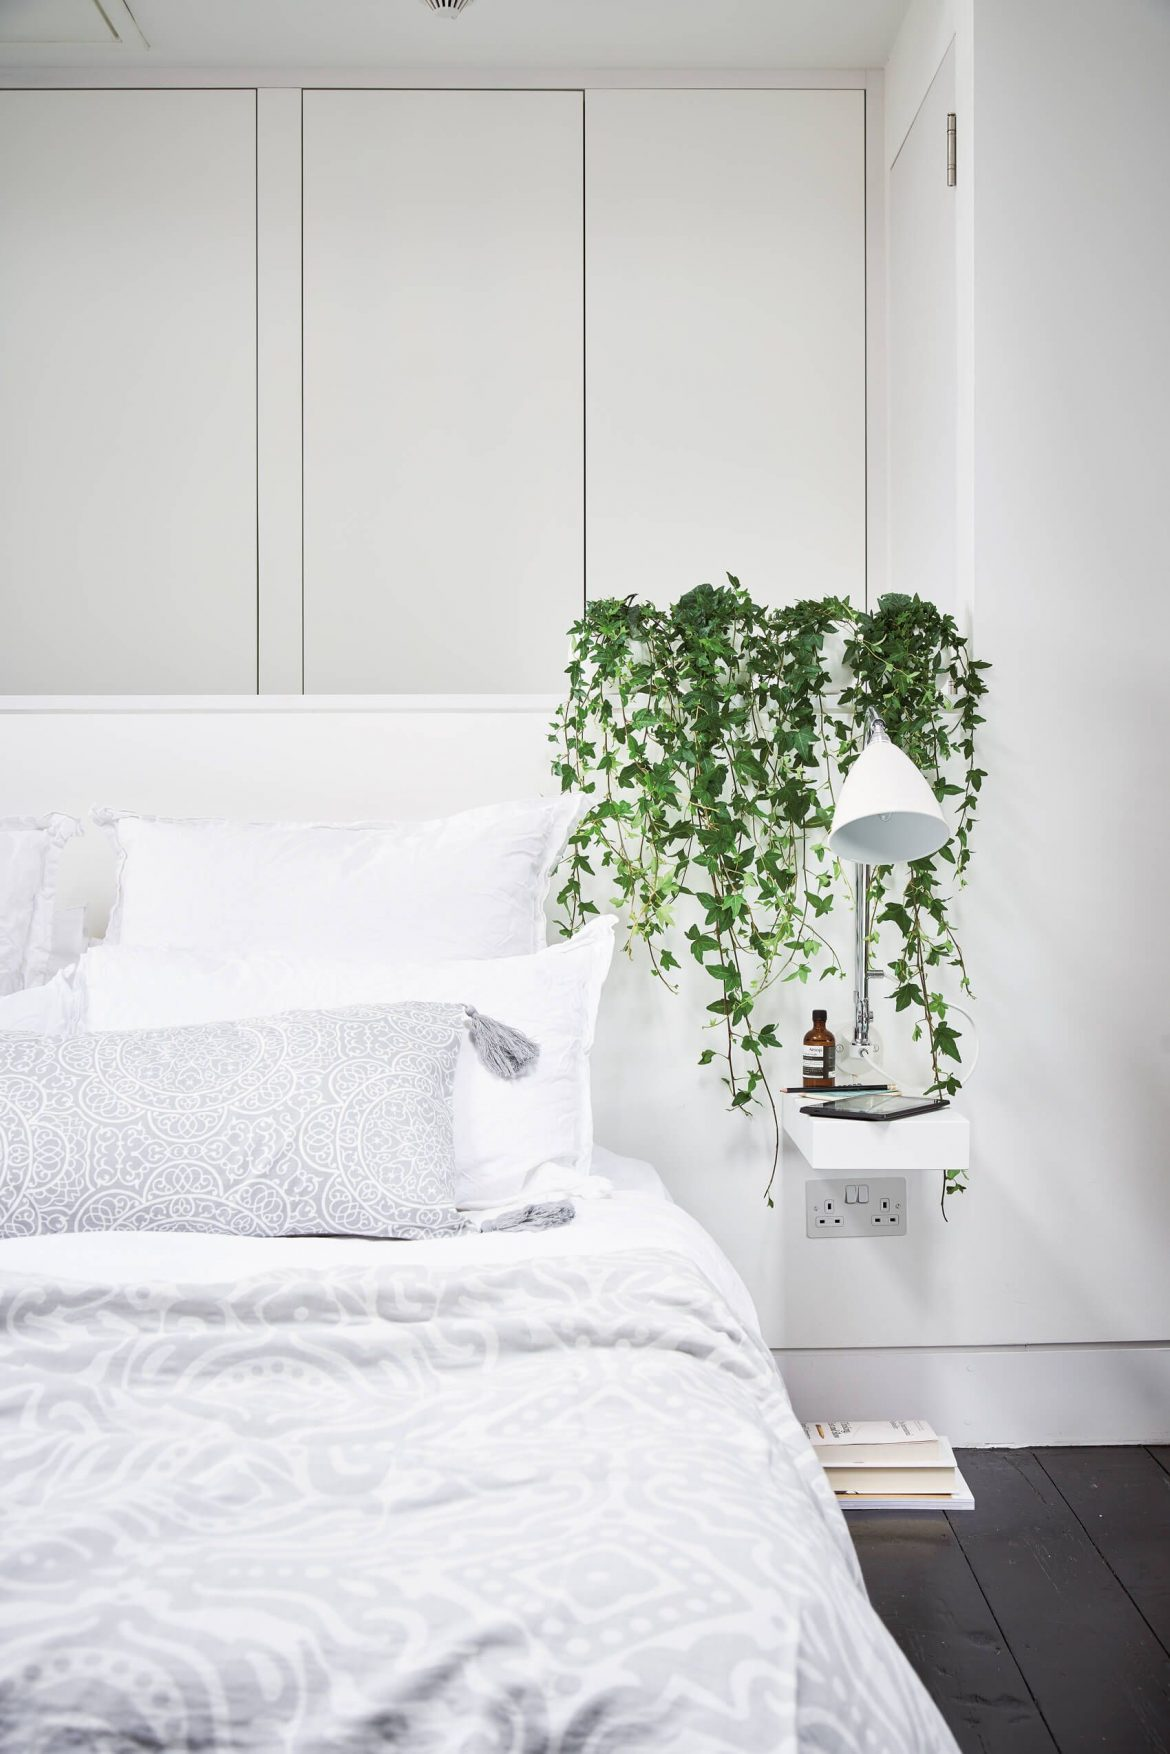 These Are The Best Bedroom Plants to Help You Get a Better Sleep 2 Bedroom Plants These Are The Best Bedroom Plants to Help You Get a Better Sleep These Are The Best Bedroom Plants to Help You Get a Better Sleep 2 1